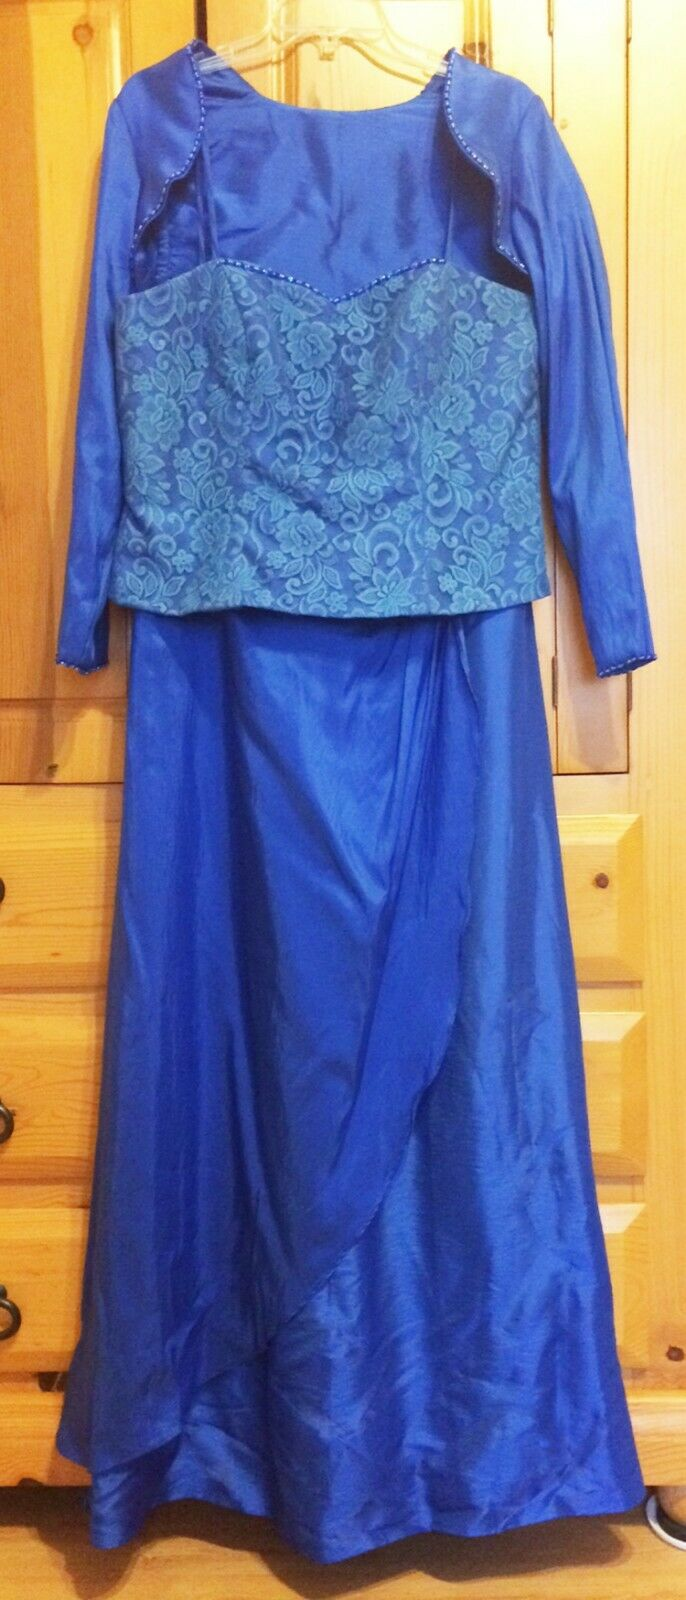 Mother of Bride Formal Gown w/ Jacket, Evening Wear, Party, Royal Blue 12, 10